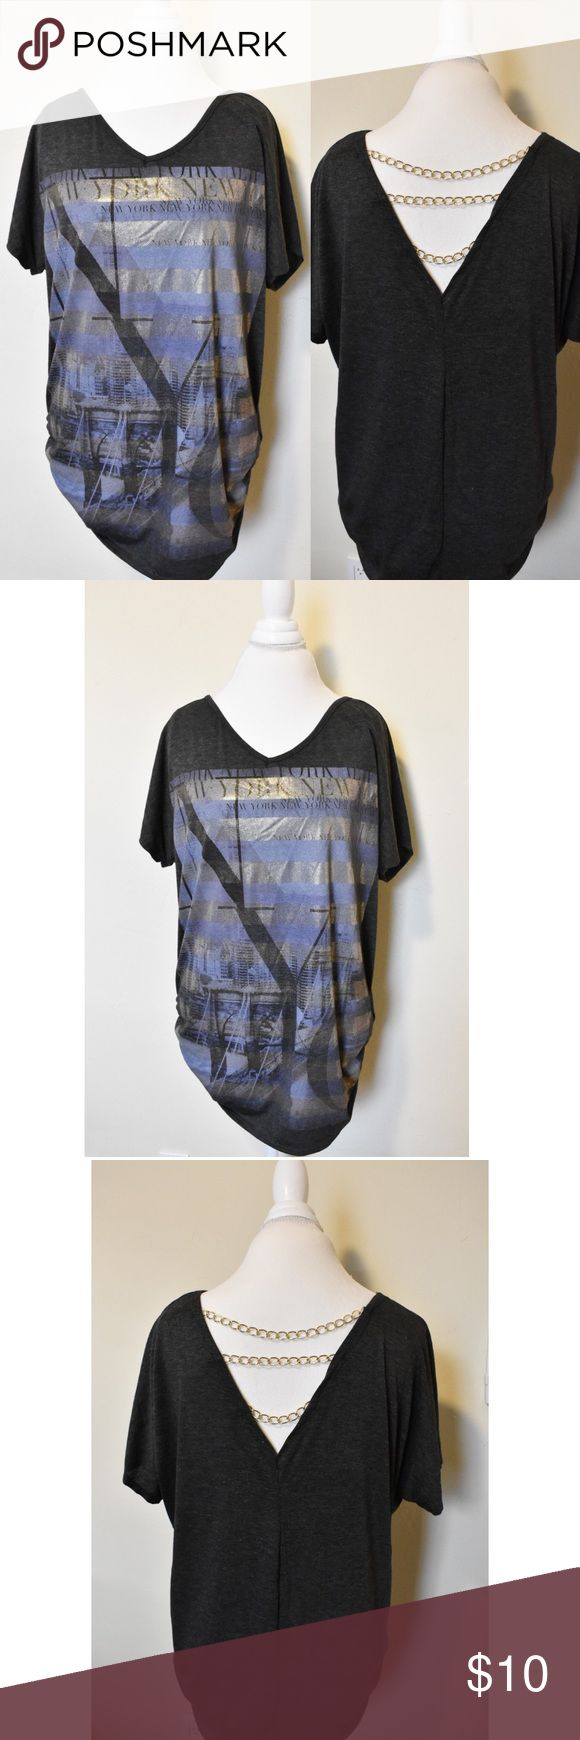 "New York Tee Size 1X Love NY? 🍎 Rep your love in this comfy silk screen tee. Slouchy fit, gathered at hips, and gold chain detail across the back. (Bust 25"")Tee is dark gray and silk screen features blues and gold. NEVER WORN! Brand new! MM Plus Tops Tees - Short Sleeve"